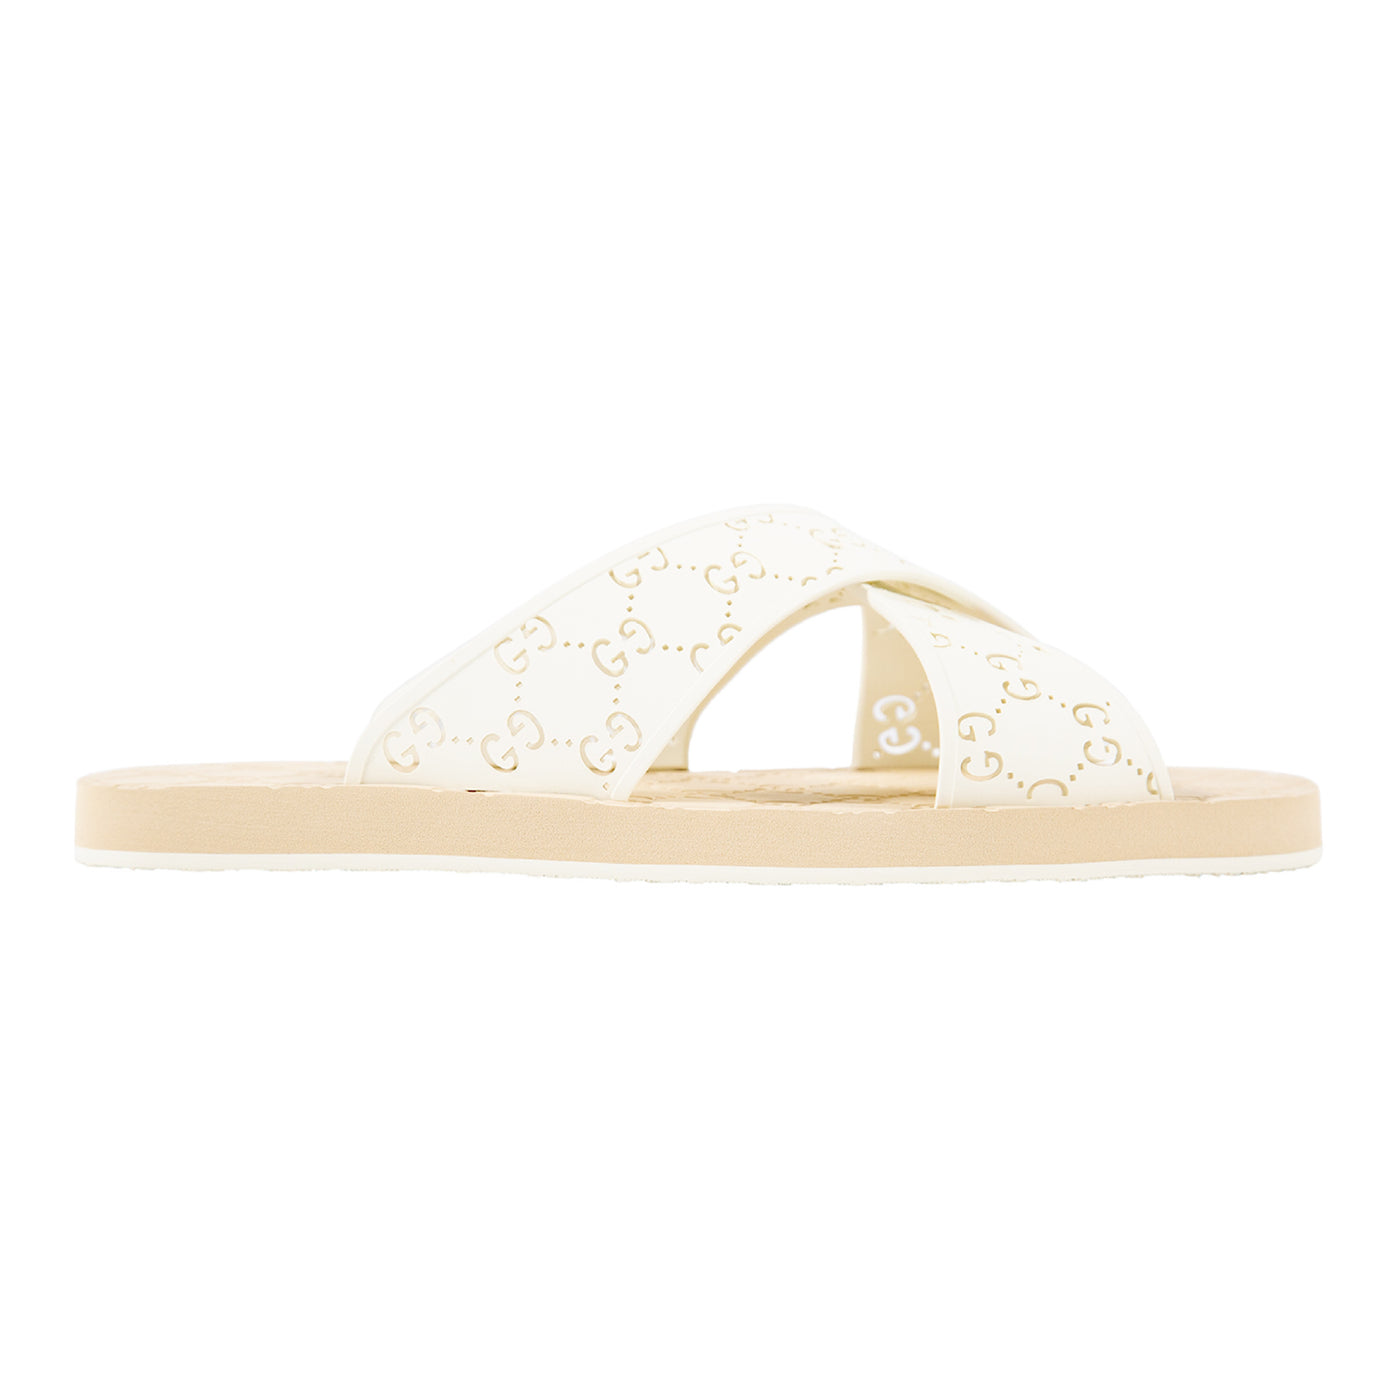 Load image into Gallery viewer, GUCCI PERFORATED RUBBER SANDAL WHITE